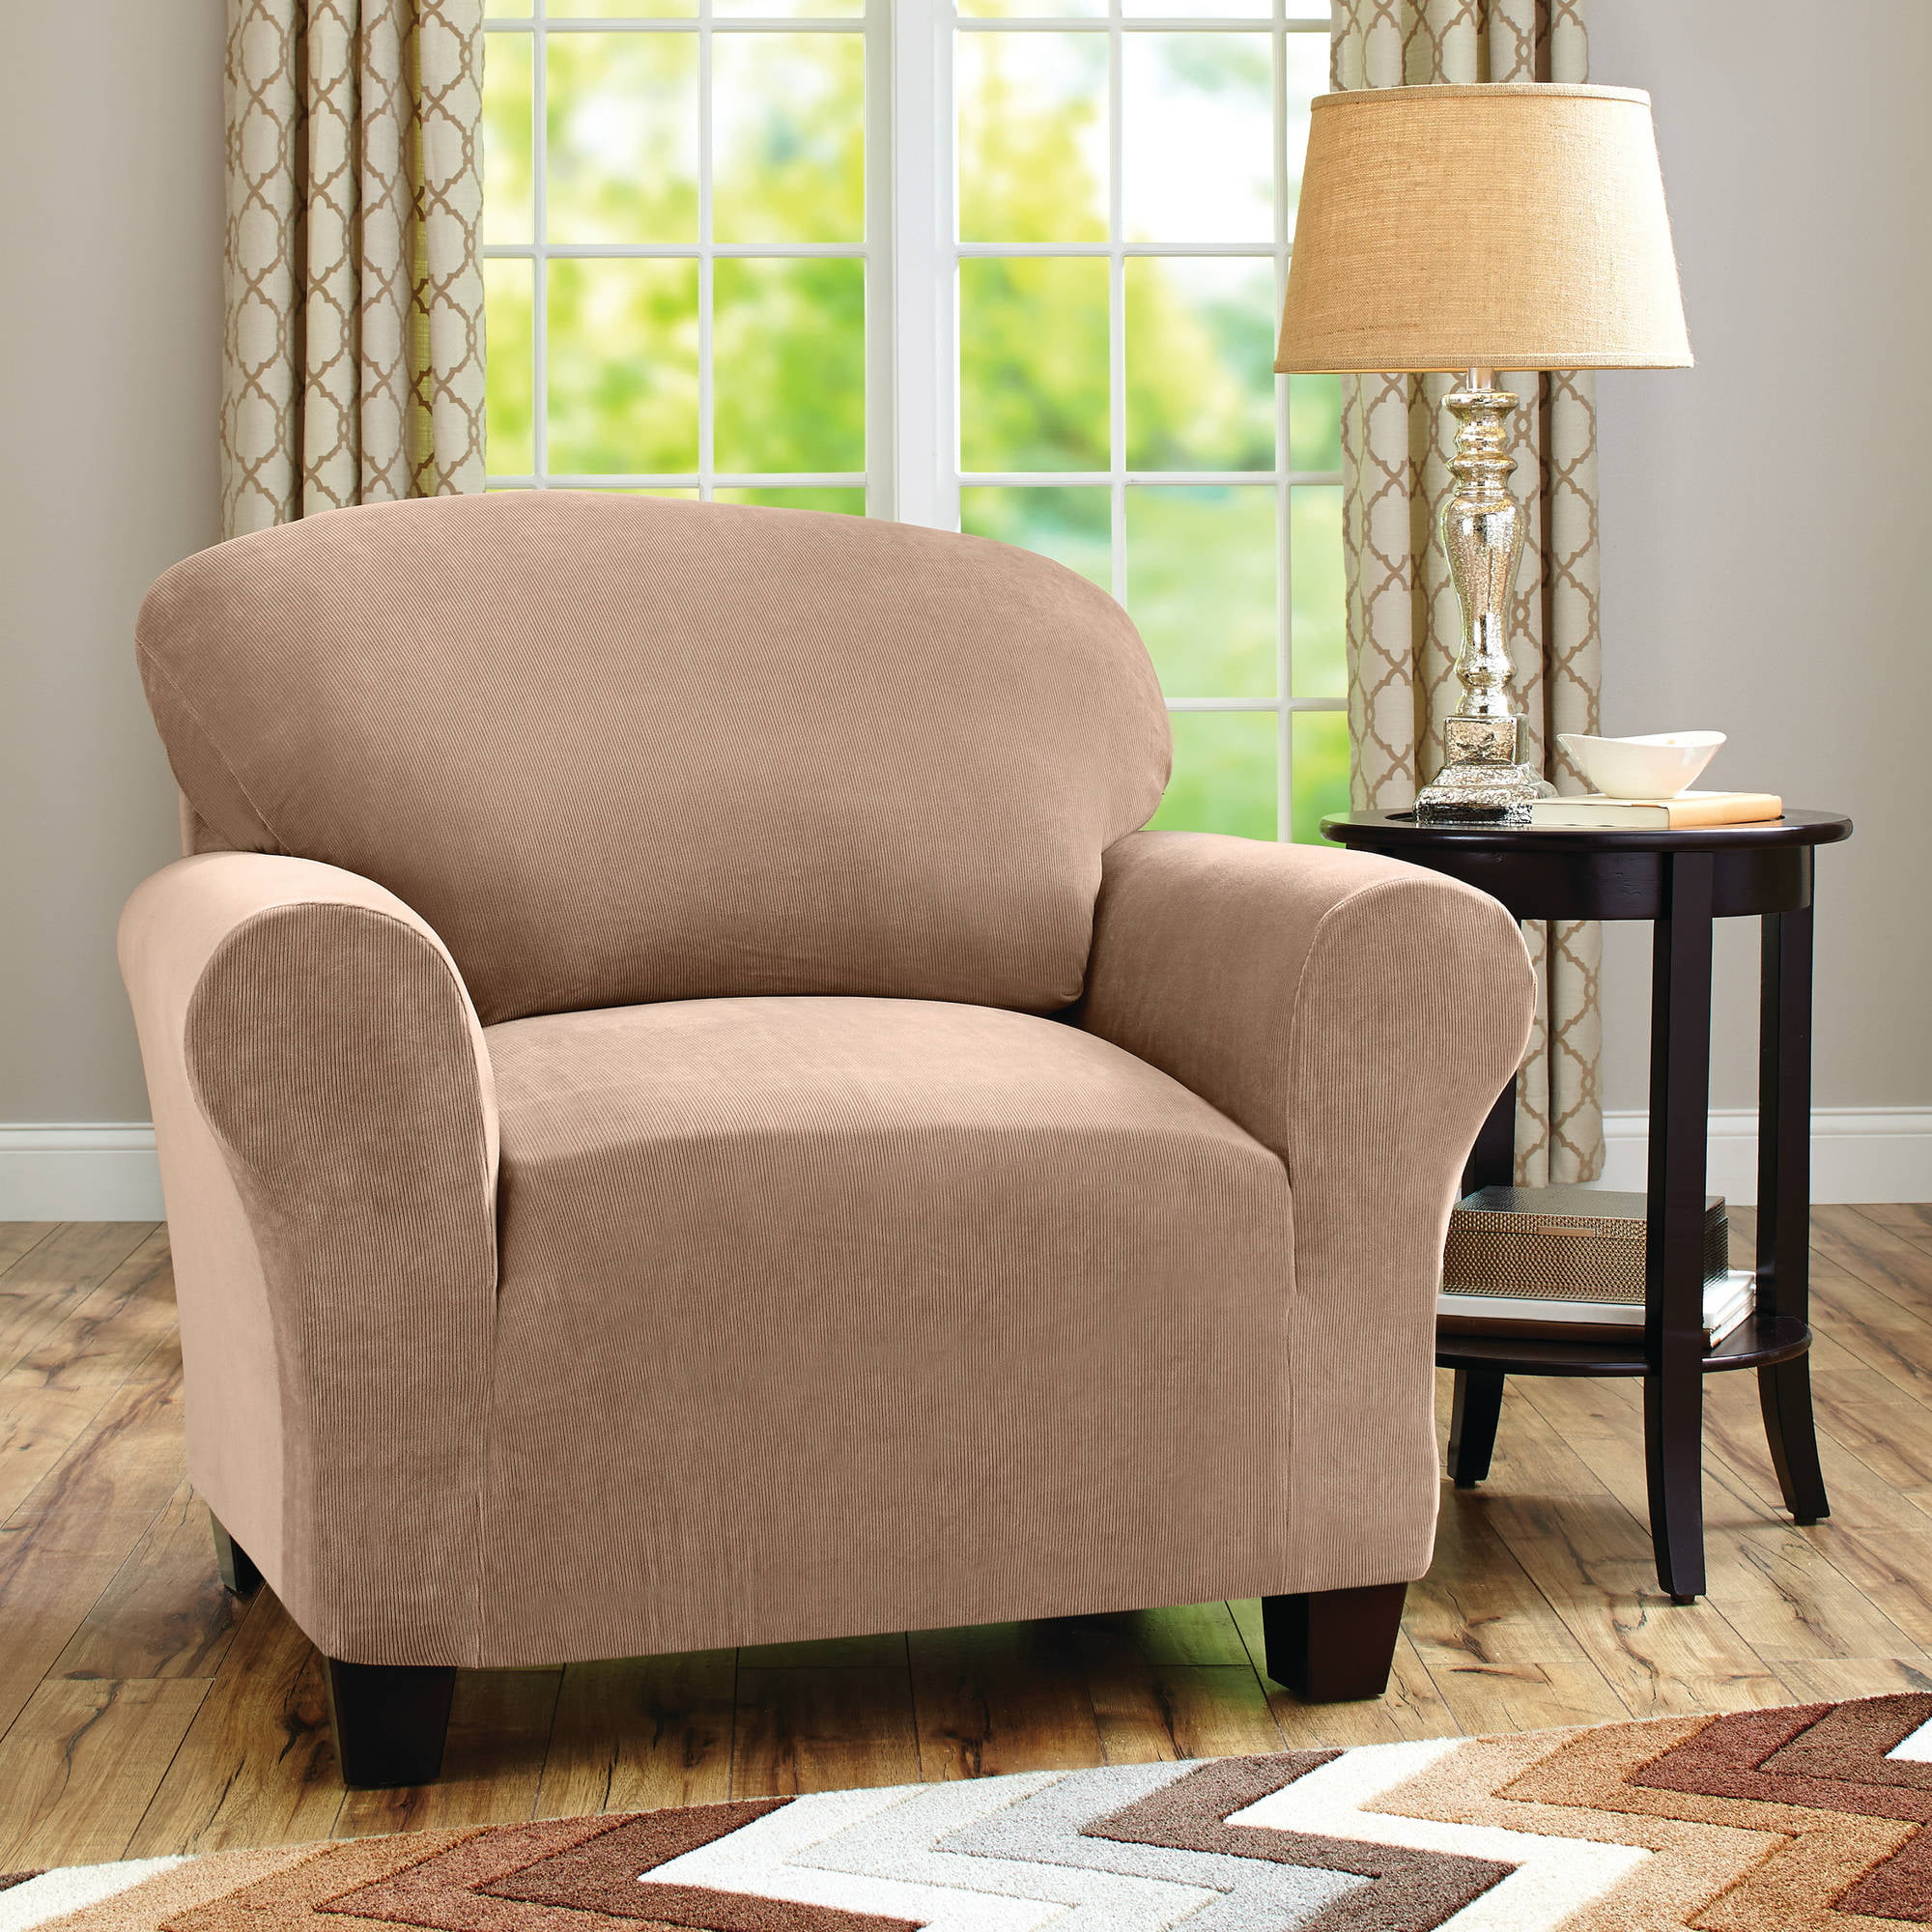 Better Homes and Gardens One-Piece Stretch Fine Corduroy Chair Slipcover by Overstock